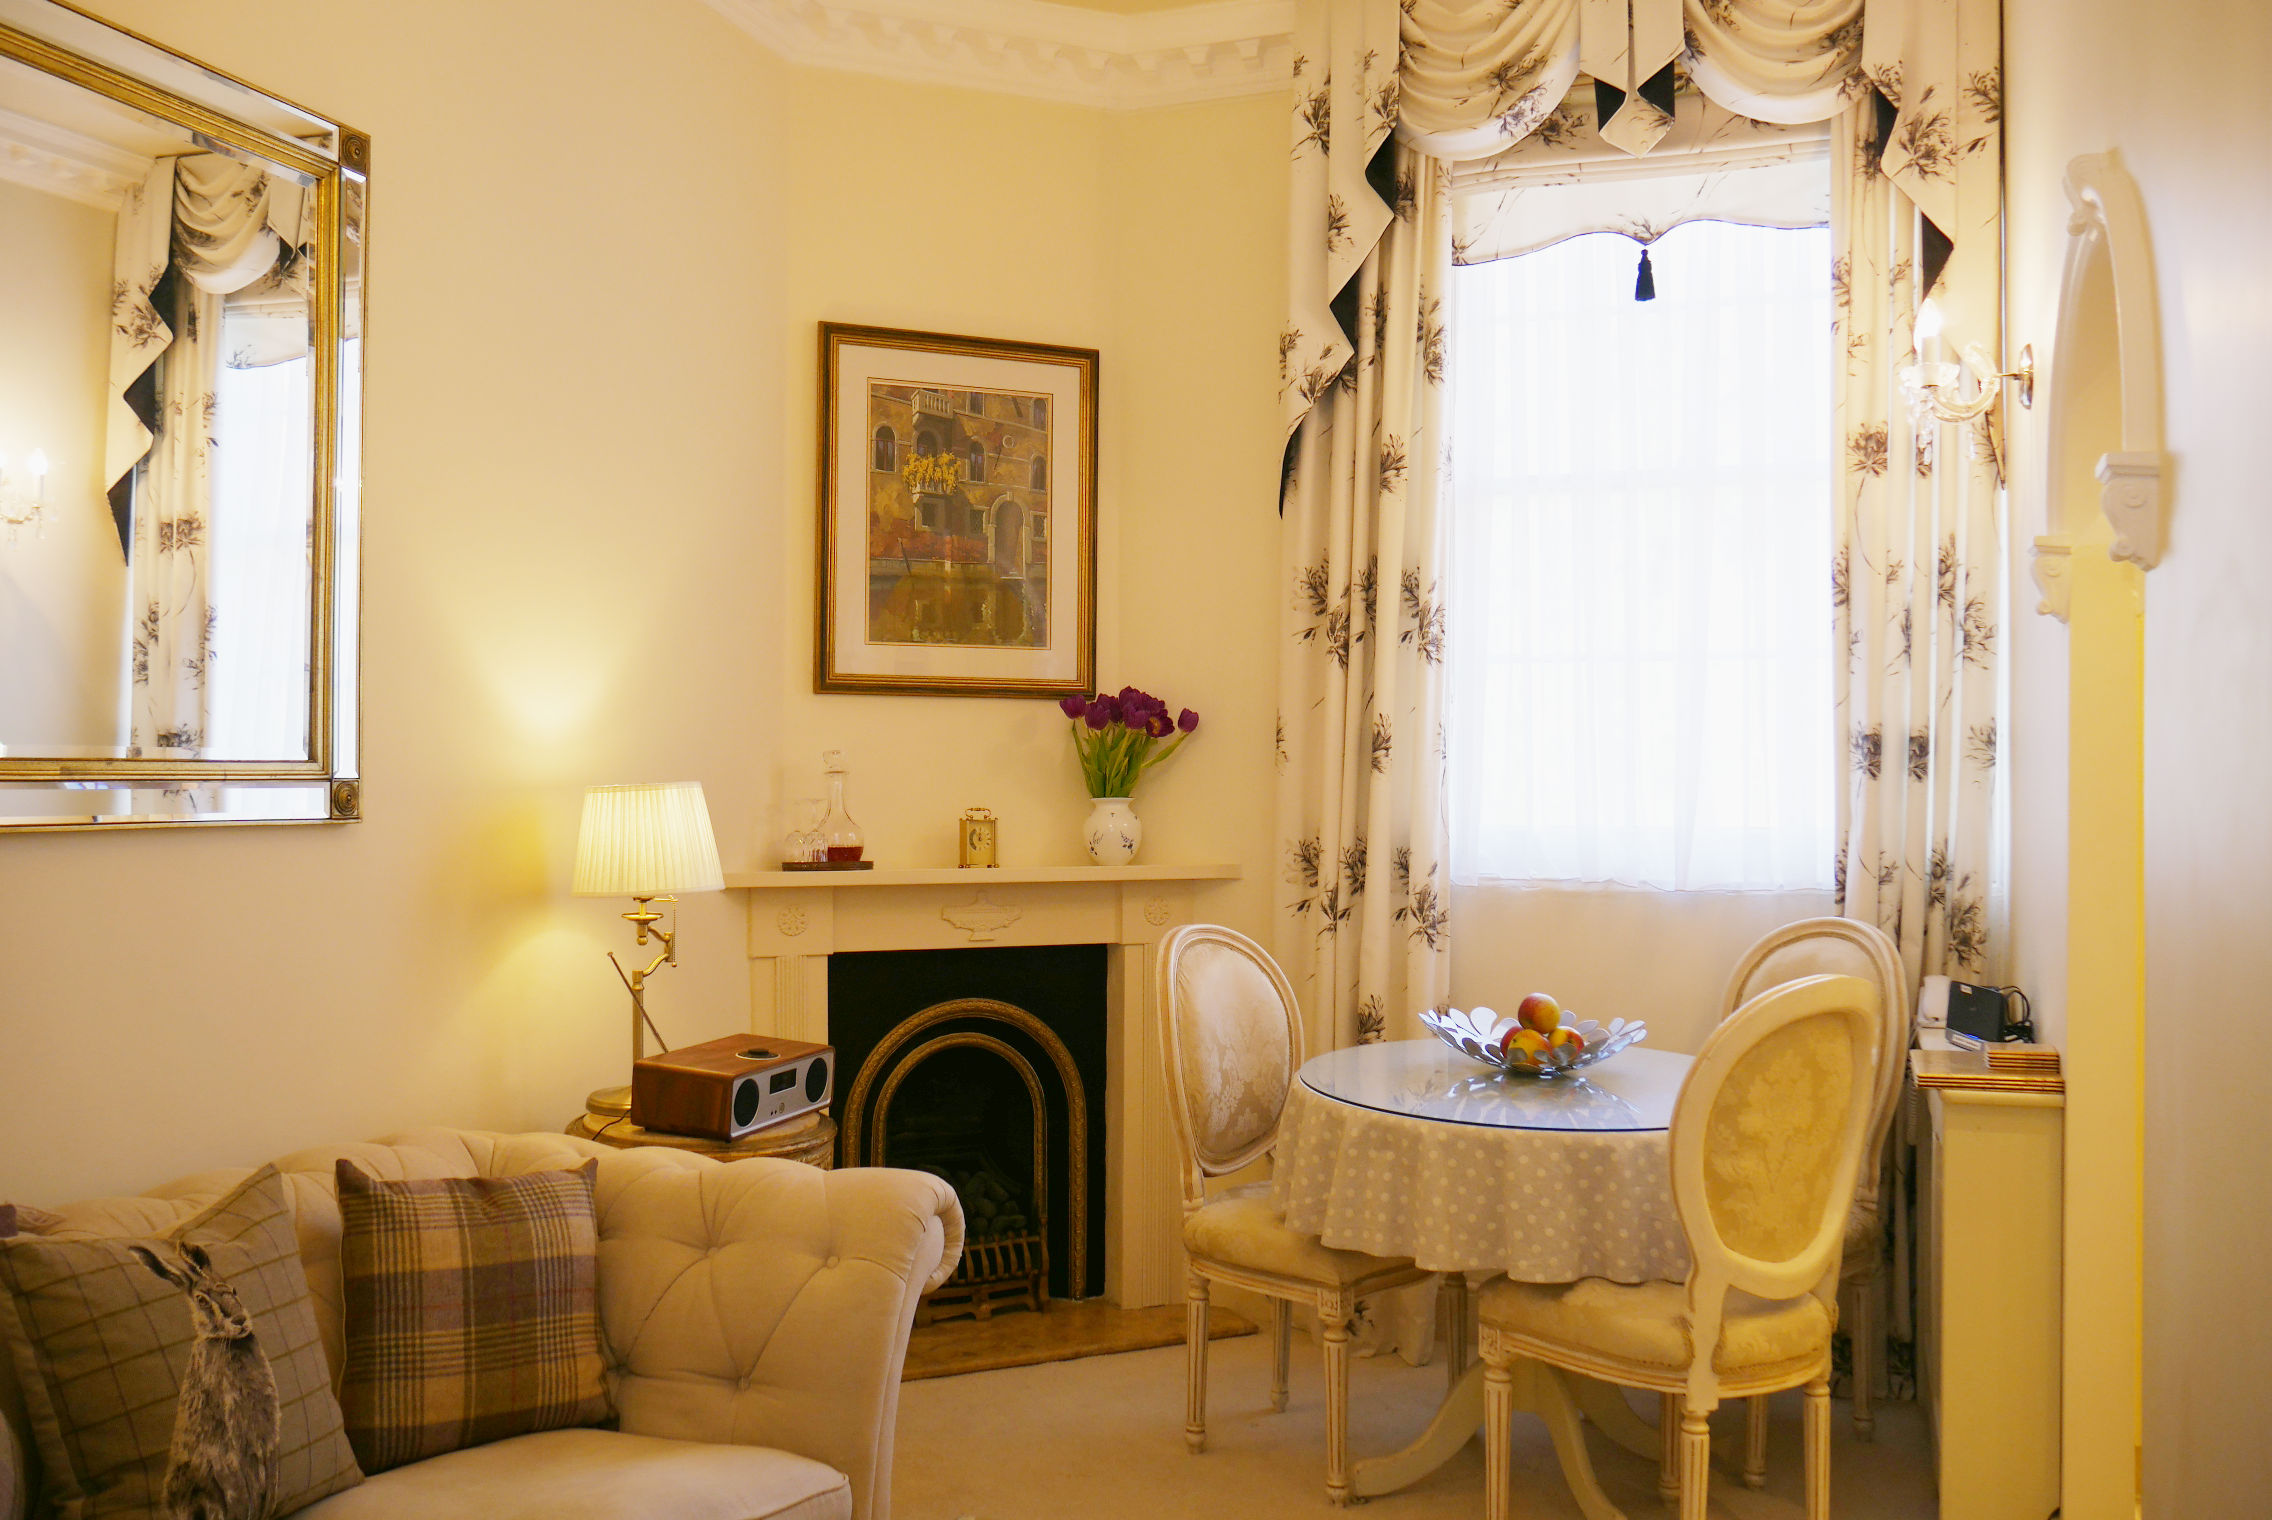 The open plan living space in The Hesketh Crescent Self Catering Holiday Apartment in Torquay